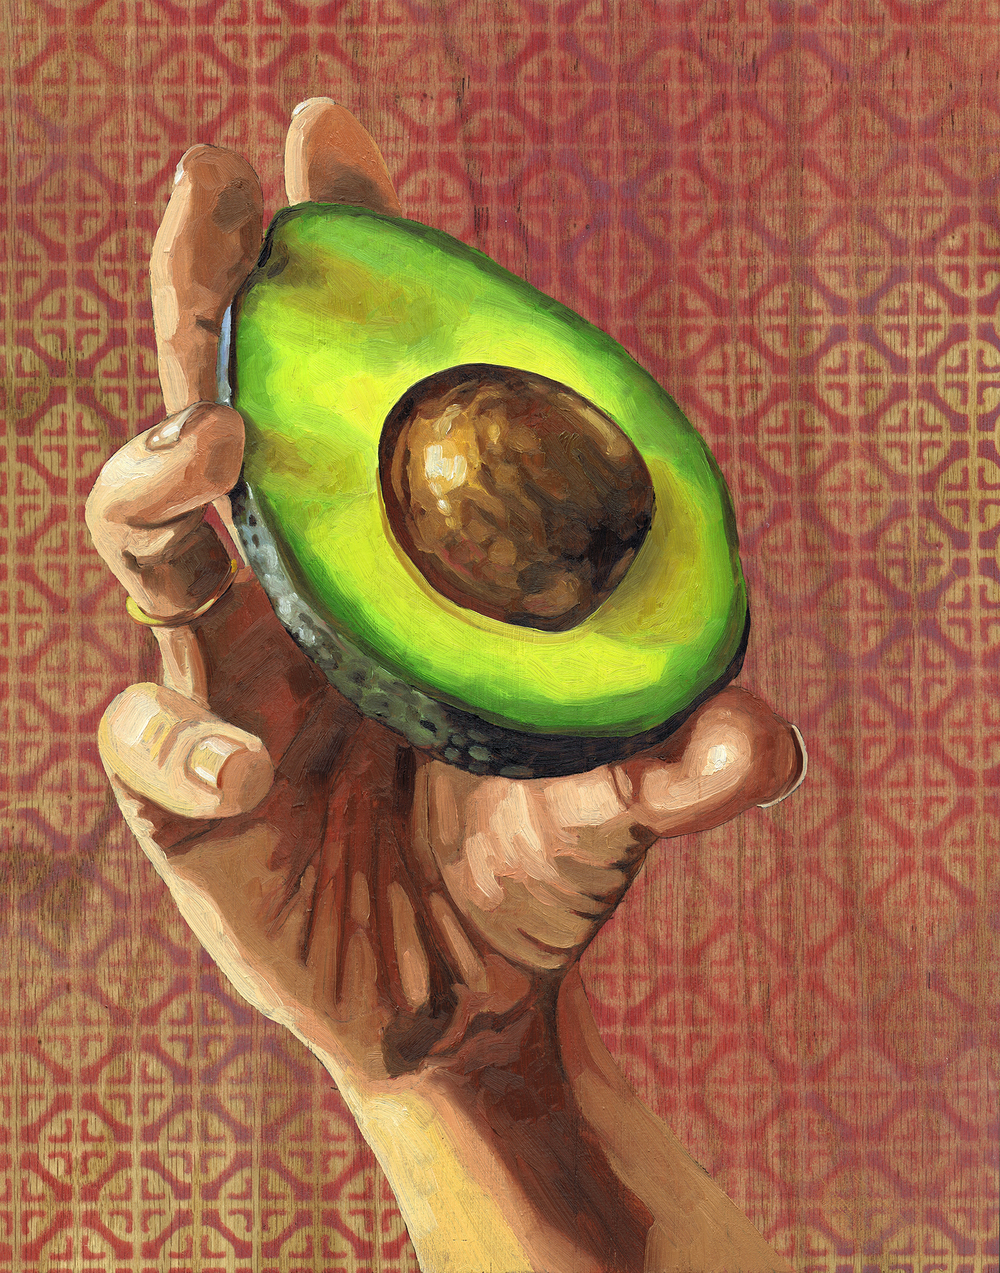 "Avocado, 14 x 11"", oil on panel, 2016"